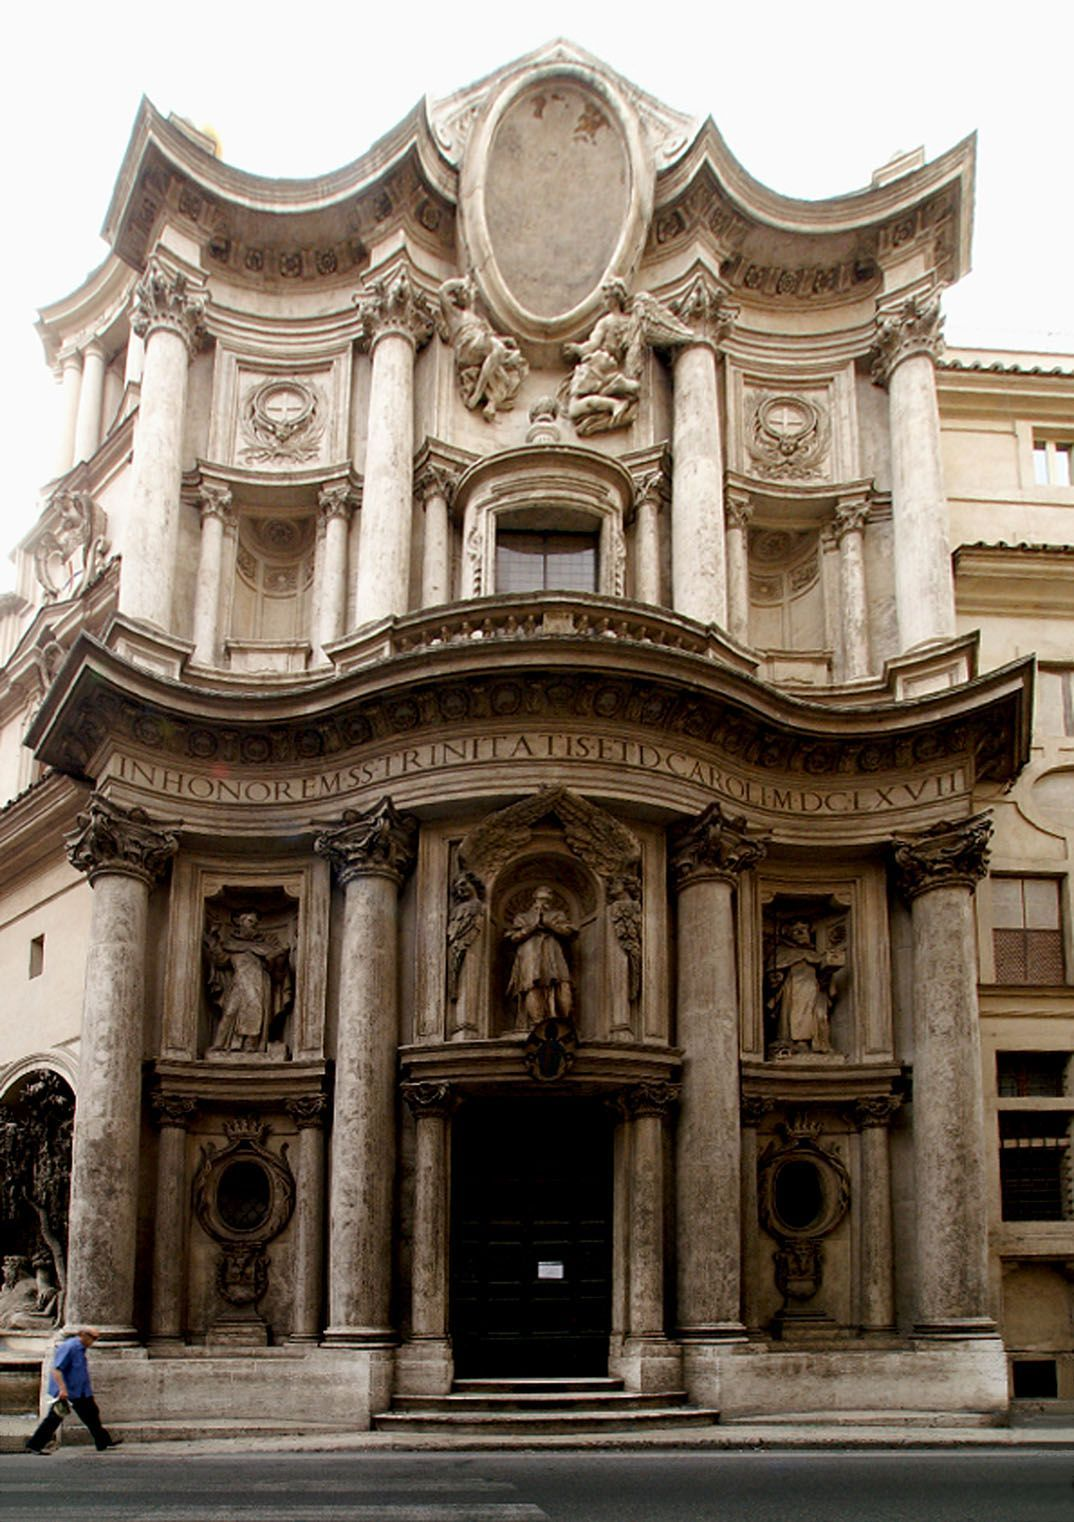 This piece of architecture was an influential Baroque church in Rome that was designed by Francesco Borromini as part of a small monastery for a community of Spanish monks. It was commissioned in 1634 and was built during 1638–46, except for the tall facade, which was added about 1677. Its floor plan was in the shape of a Greek cross.